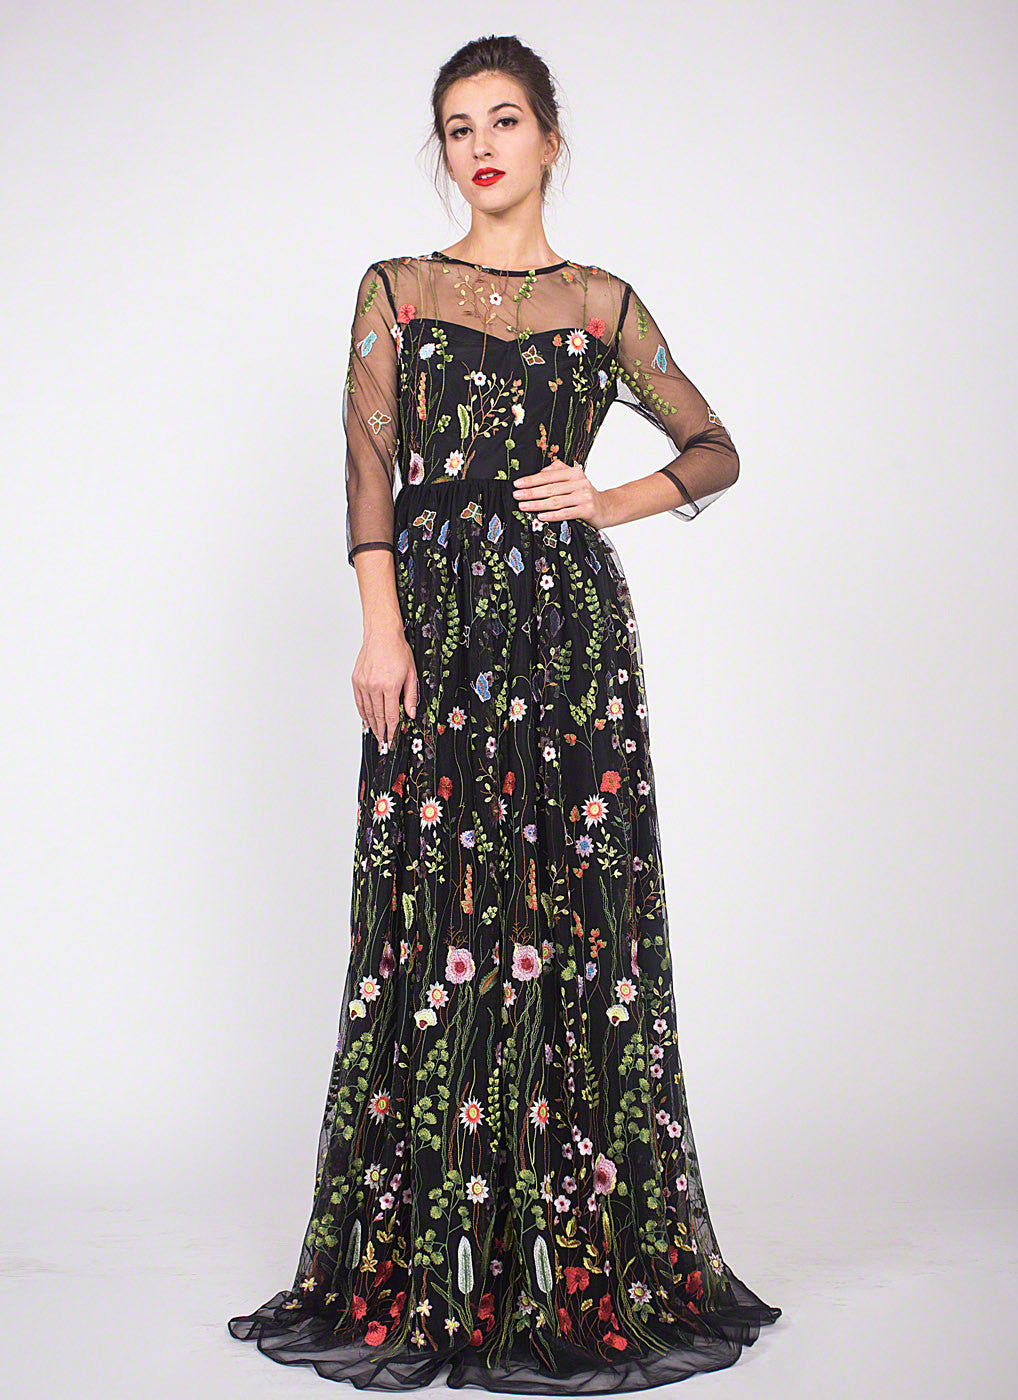 bd87c44105c Black Tulle Floor Length Dress with Colorful Floral Embroidery  Elegant Black  Embroidered Tulle Lace Evening